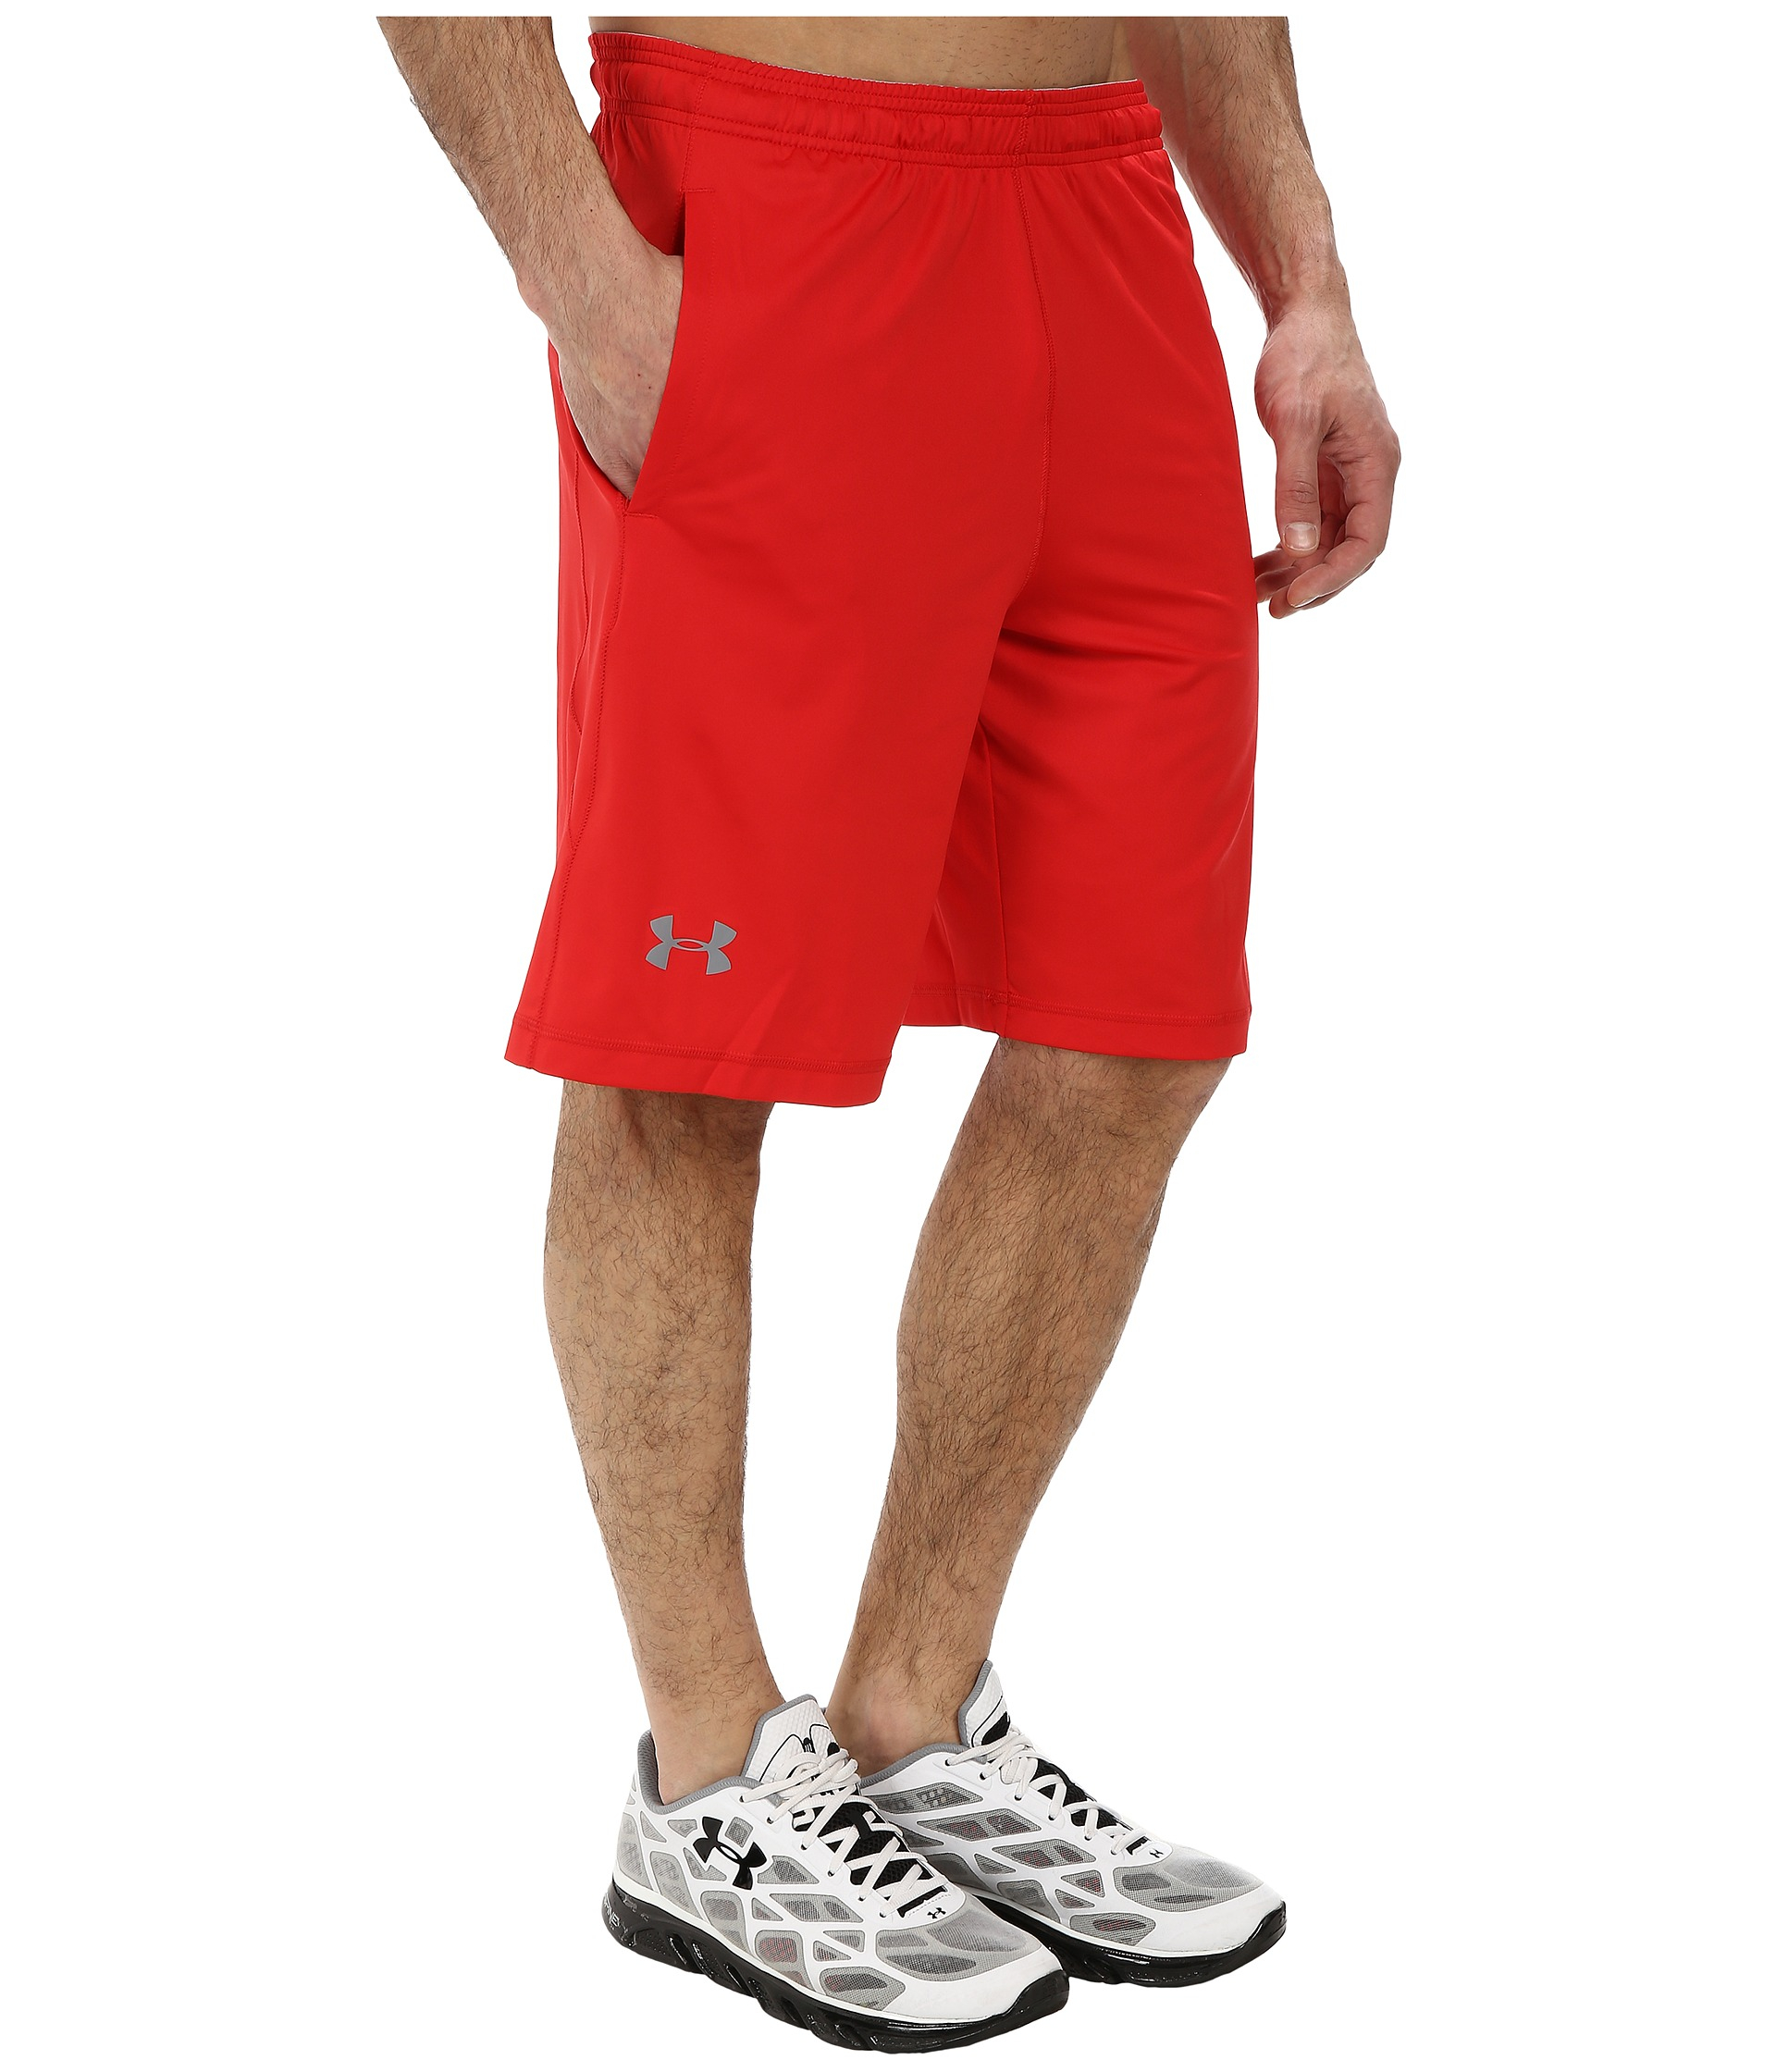 Under armour ua raid short in red red steel lyst for Thrilla in manila shirt under armour